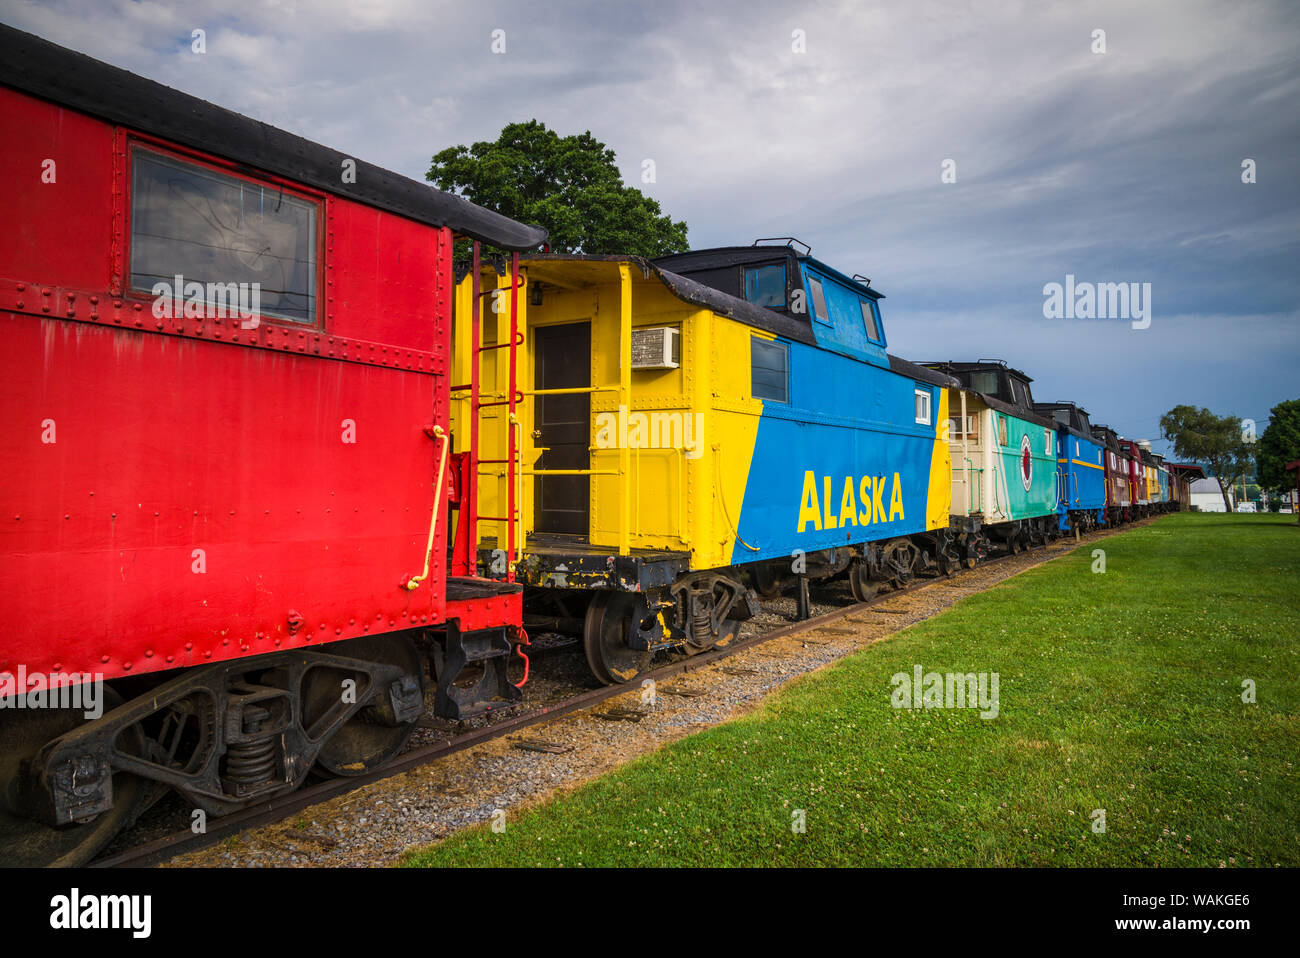 Caboose Stock Photos & Caboose Stock Images - Page 3 - Alamy